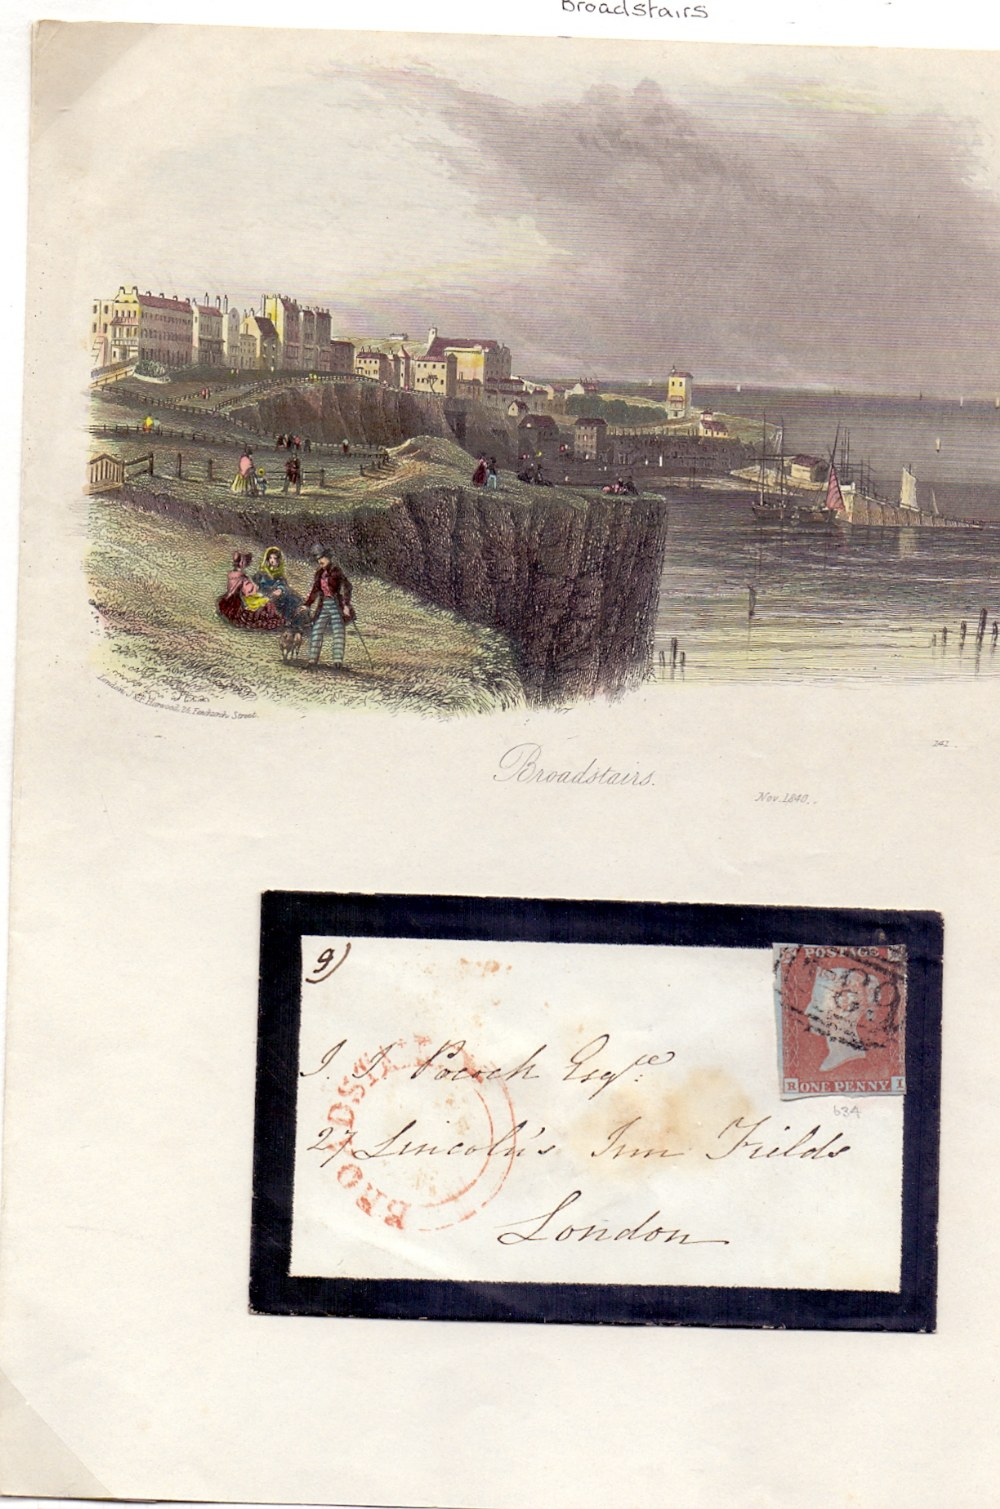 Lot 133 - POSTAL HISTORY STAMPS : BROADSTAIRS, 184